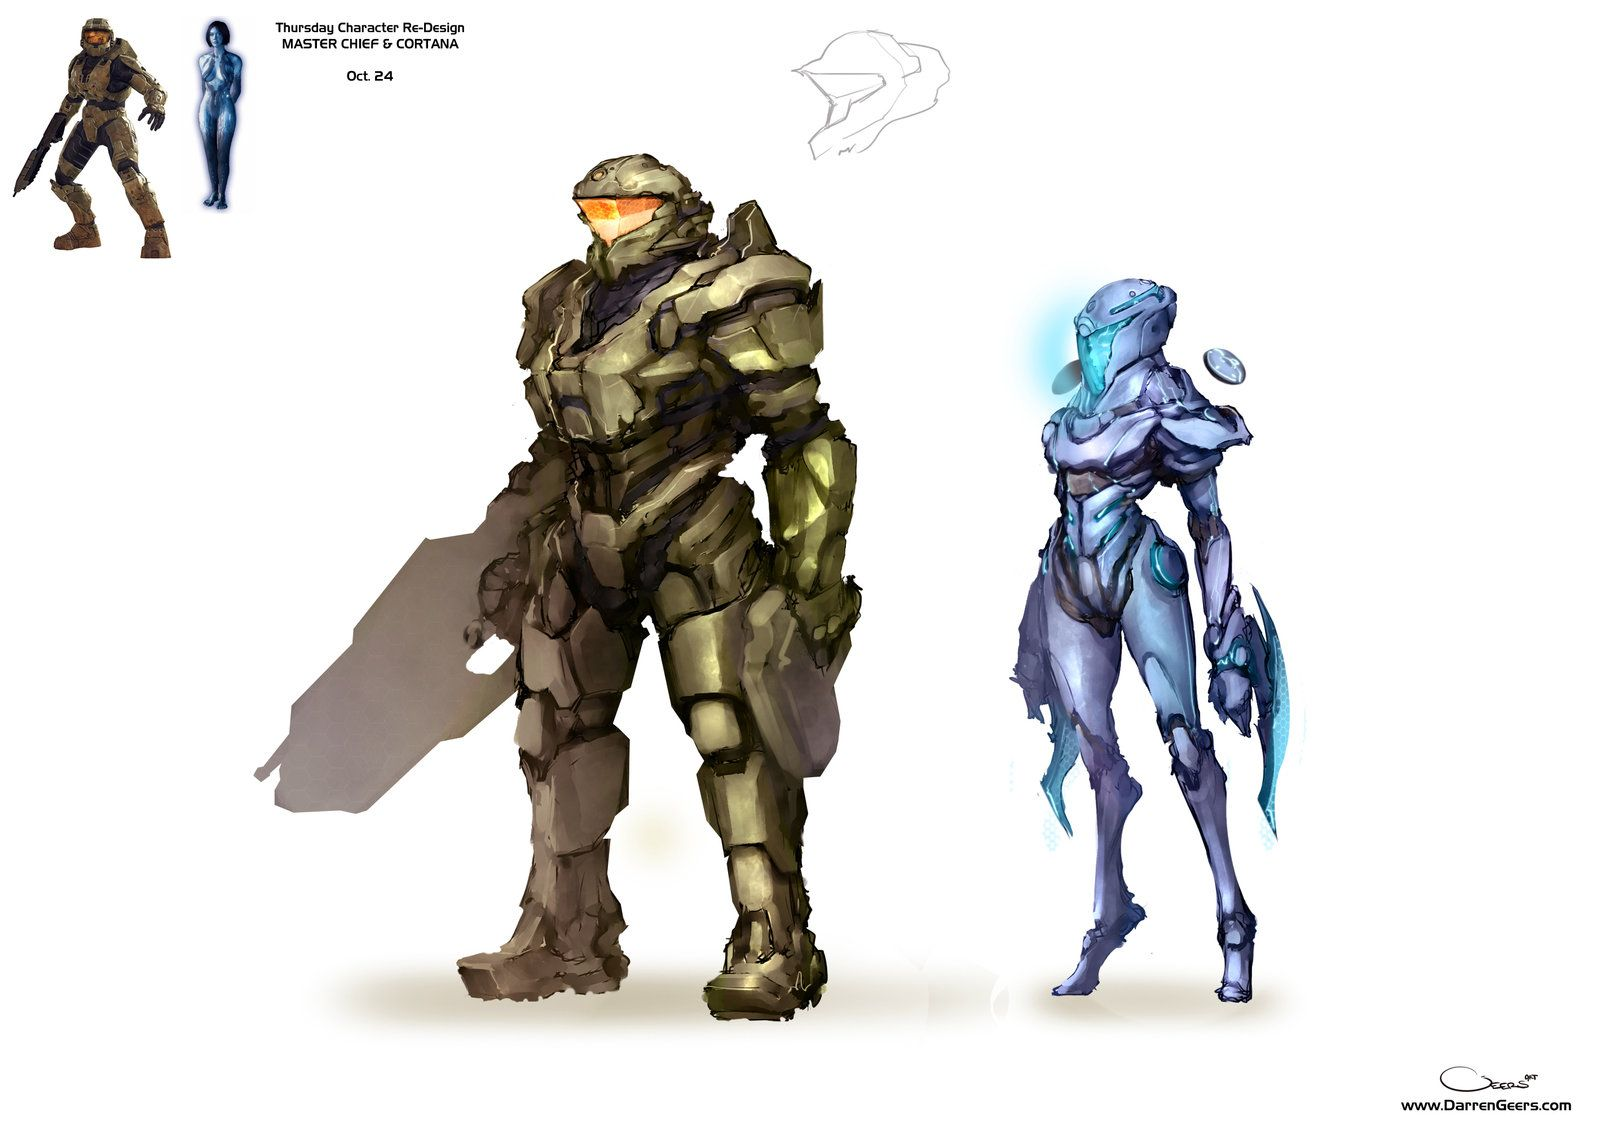 master chief and cortana relationship poems